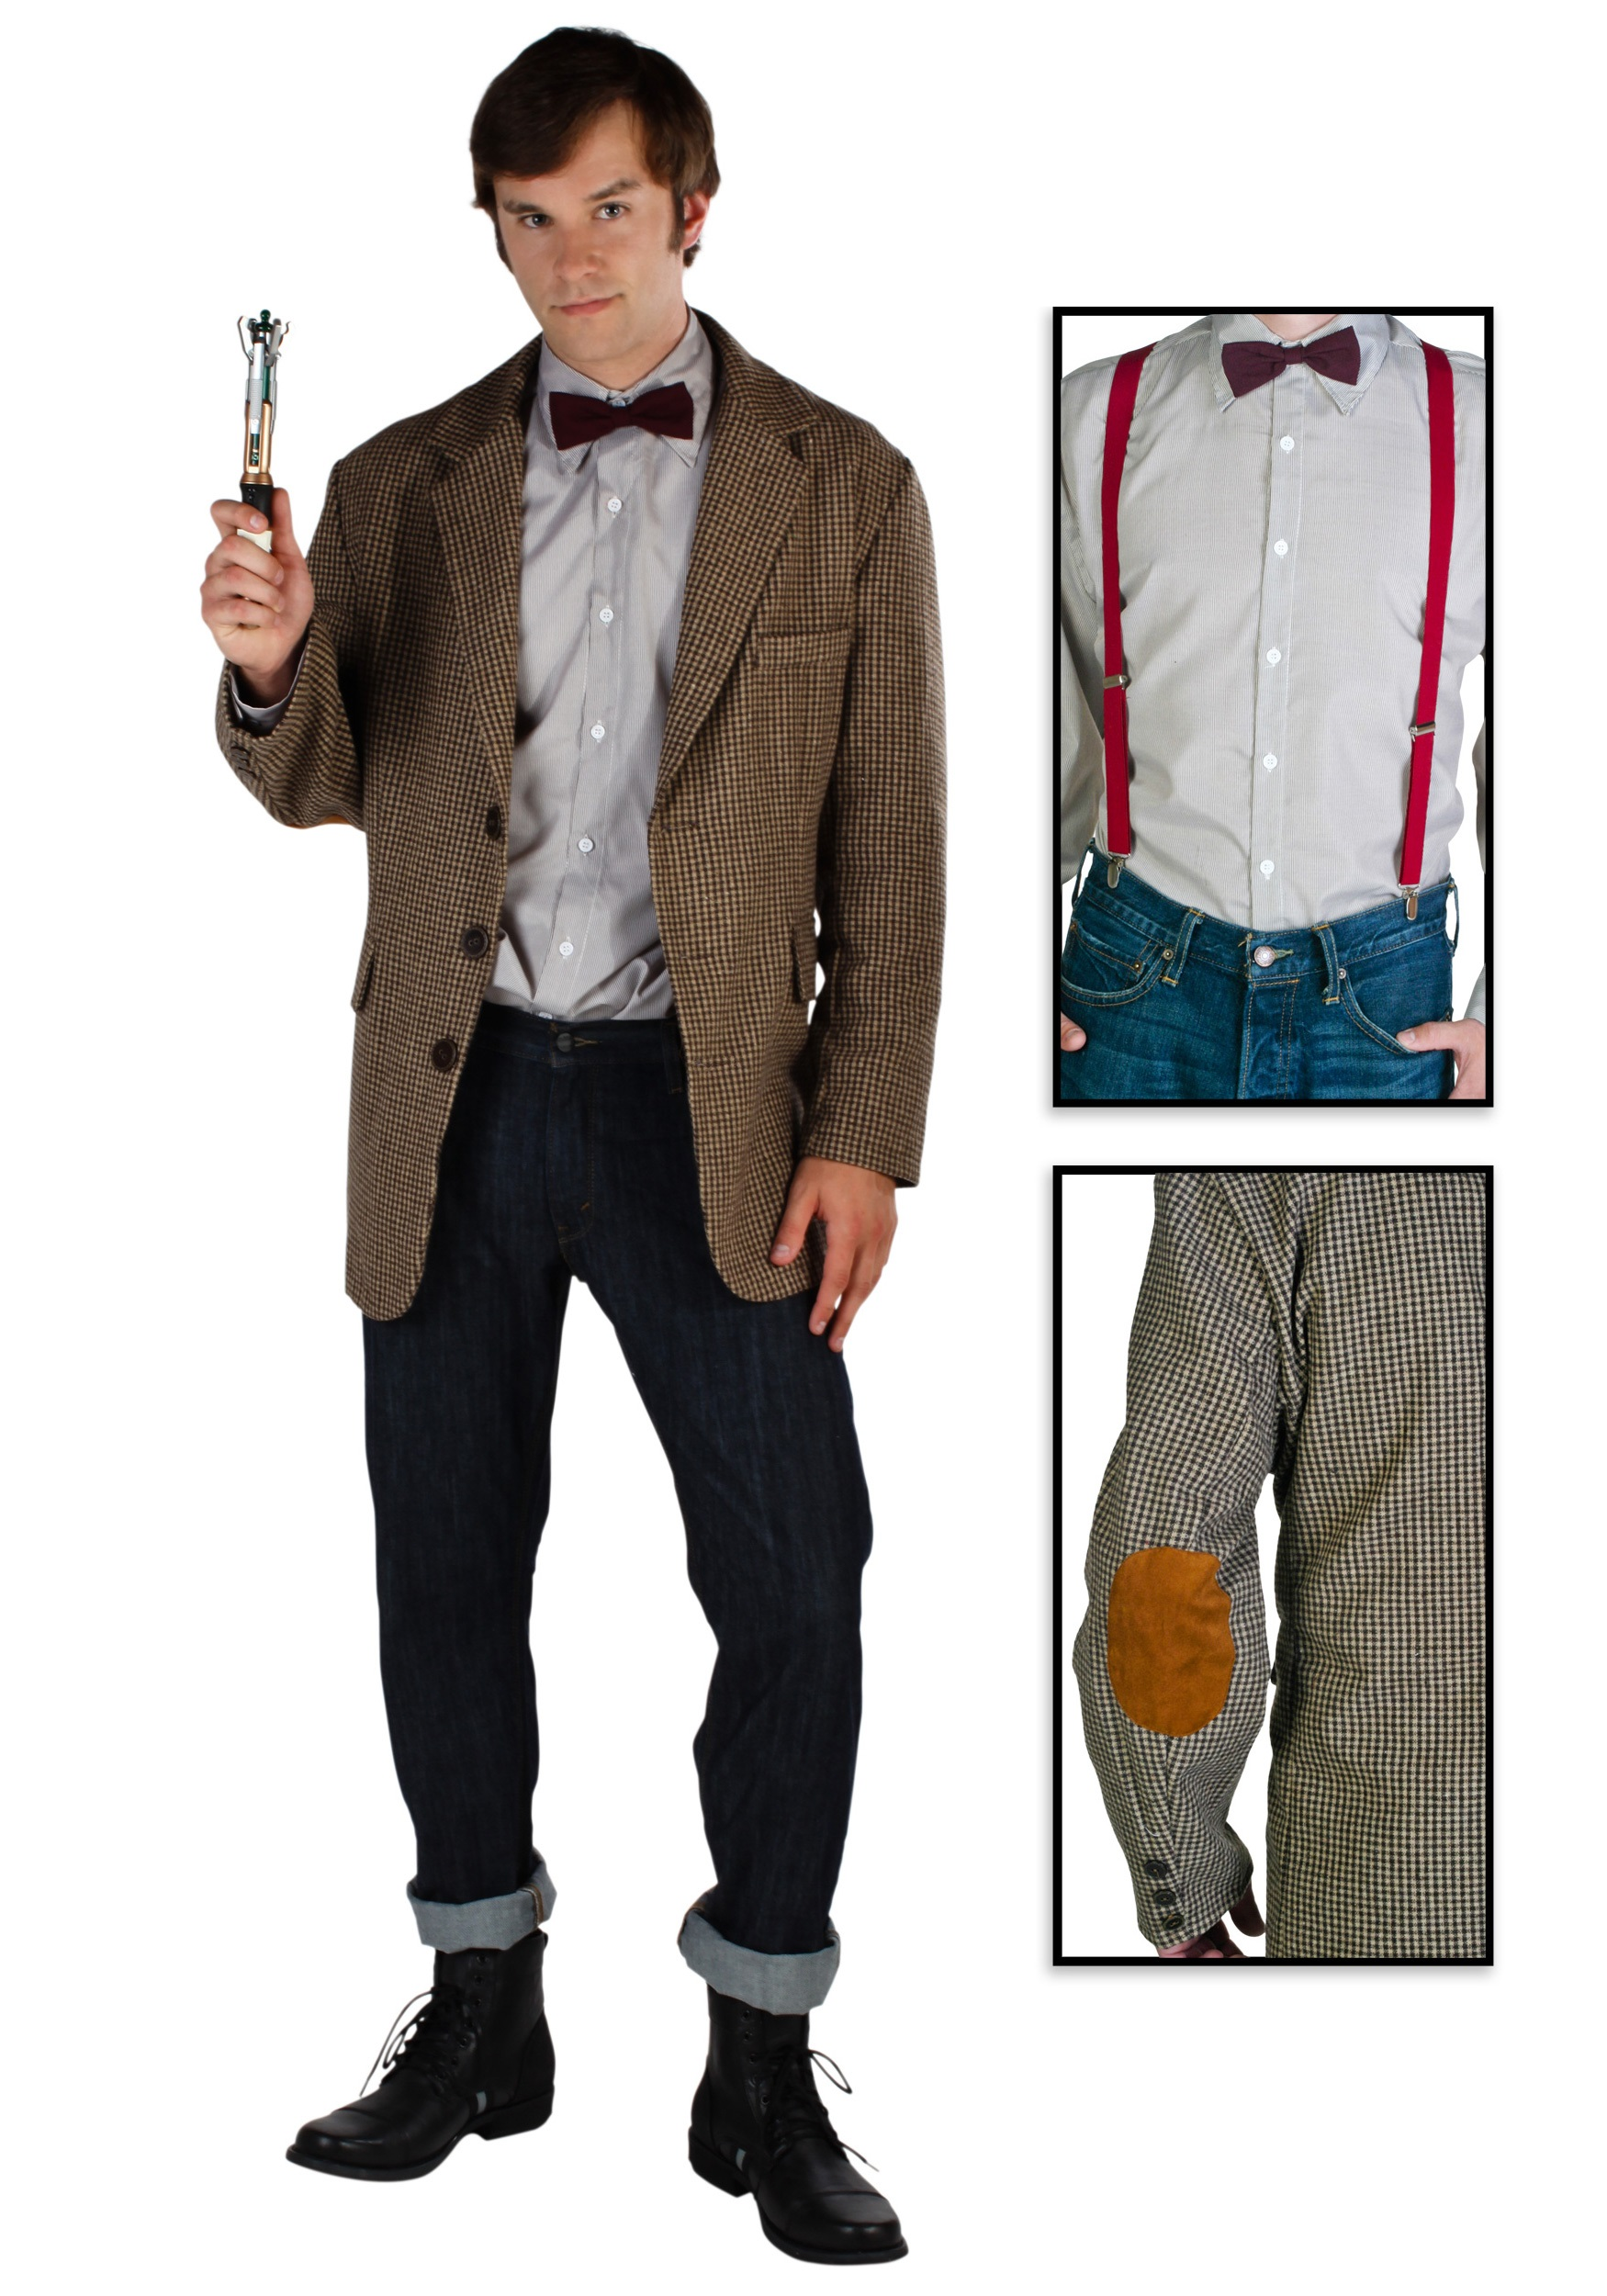 plus size doctor professor costume - halloween costume ideas 2018